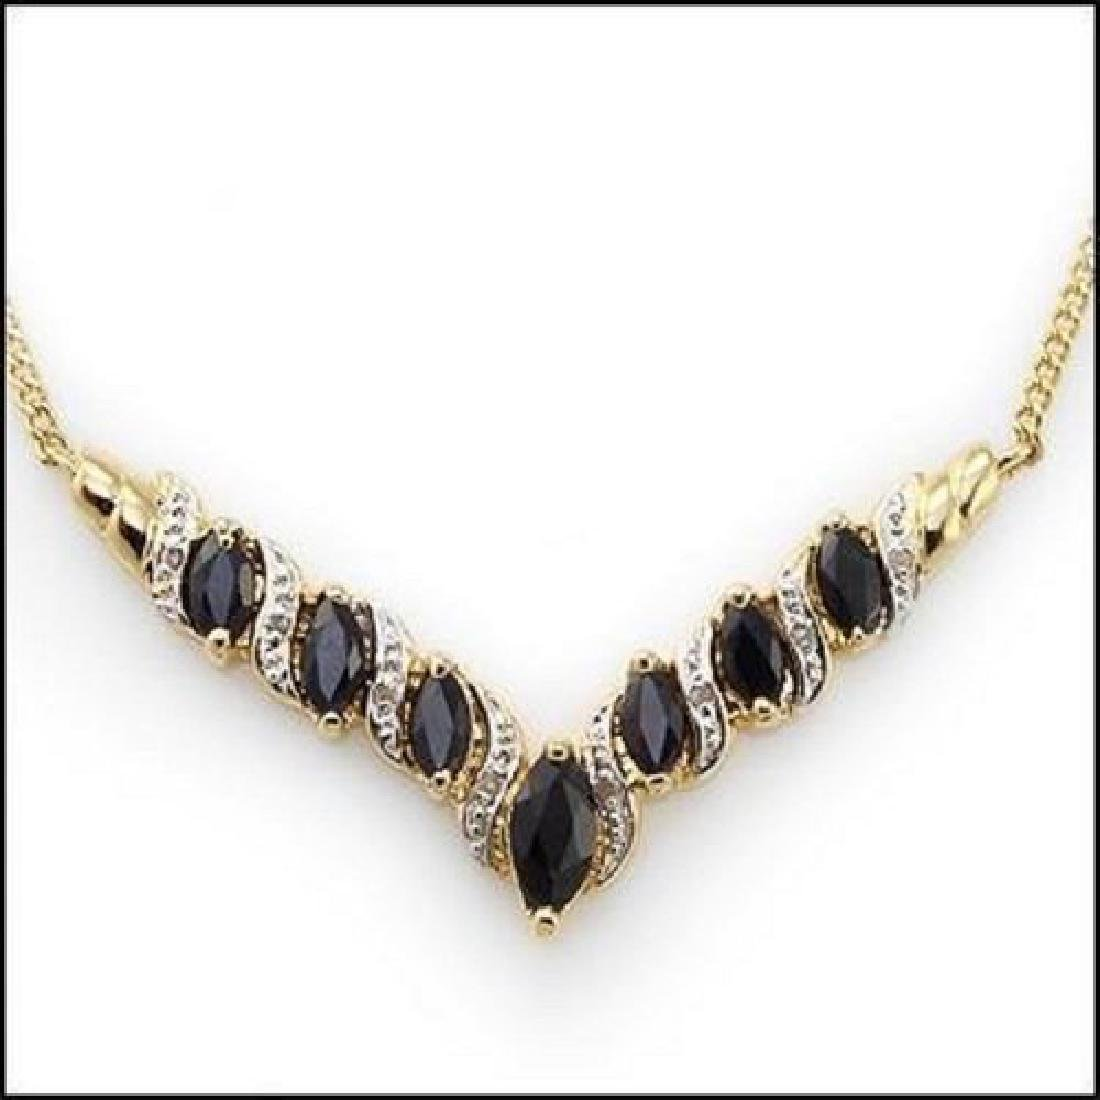 6.92 CT Sapphire & Diamond Designer Necklace MSRP $1120 - 2